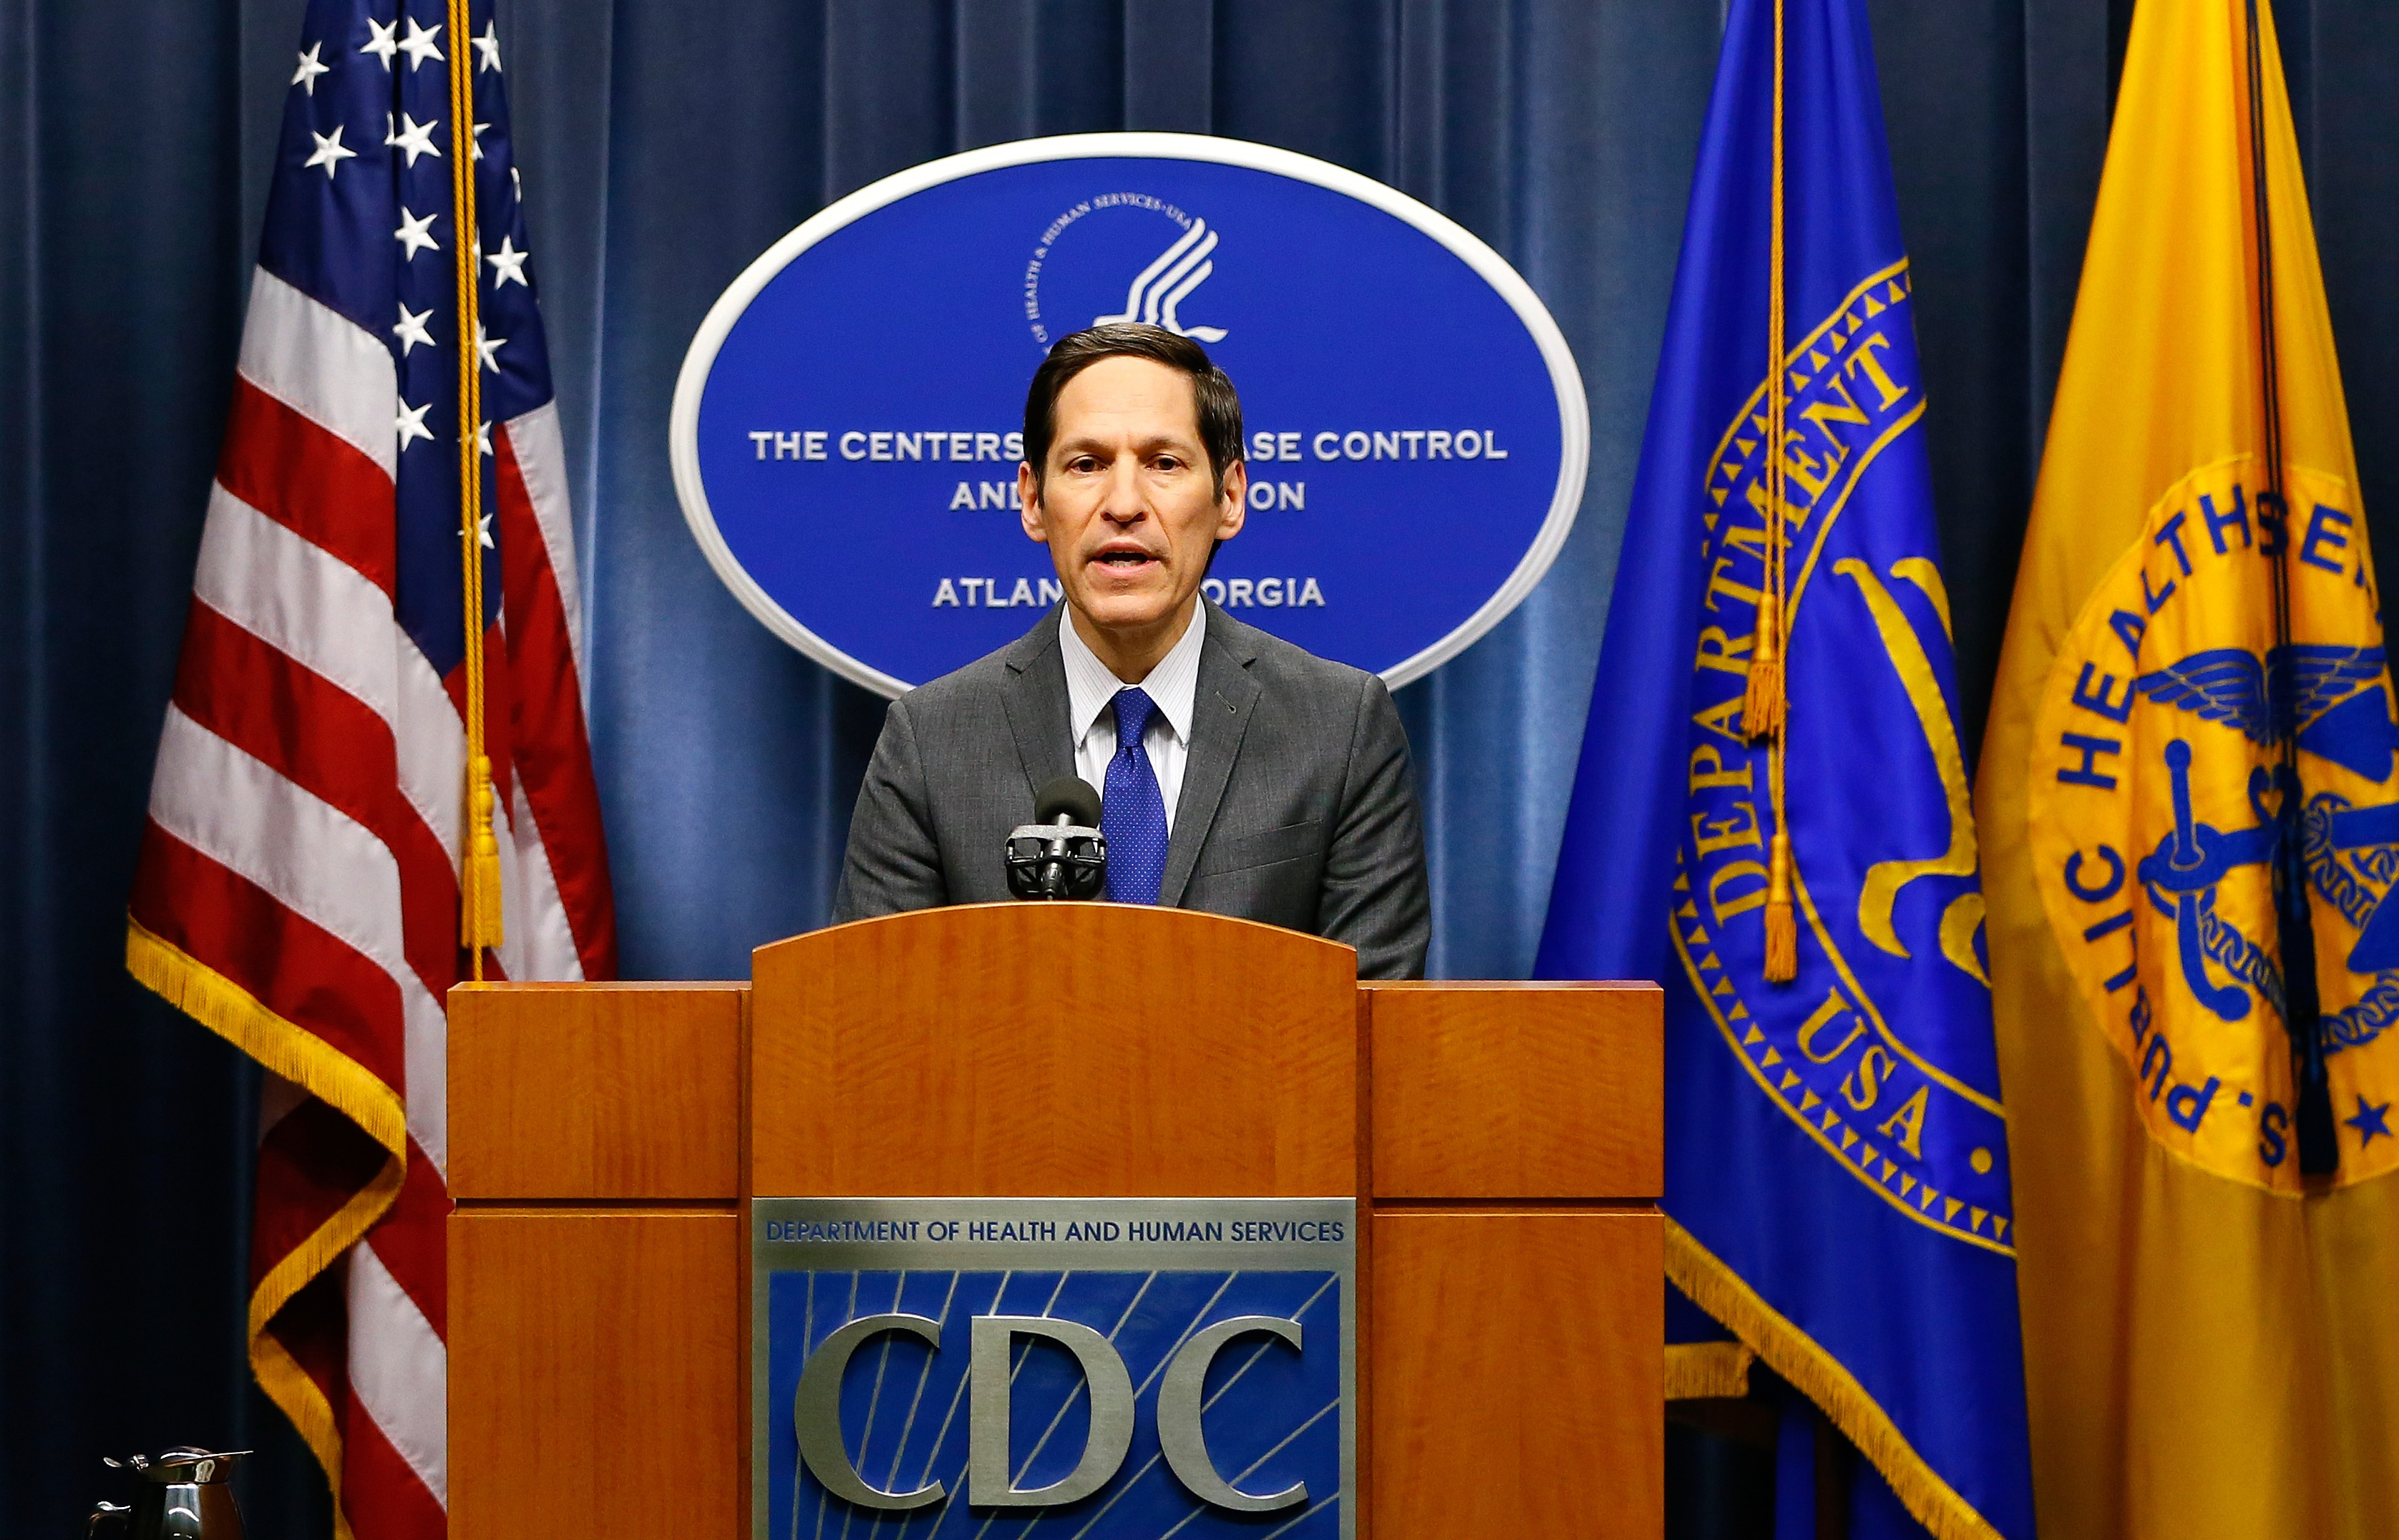 Director of Centers for Disease Control and Prevention Tom Frieden addresses the media on the Ebola case in the U.S. at the Tom Harkin Global Communications Center on Oct. 5, 2014 in Atlanta.